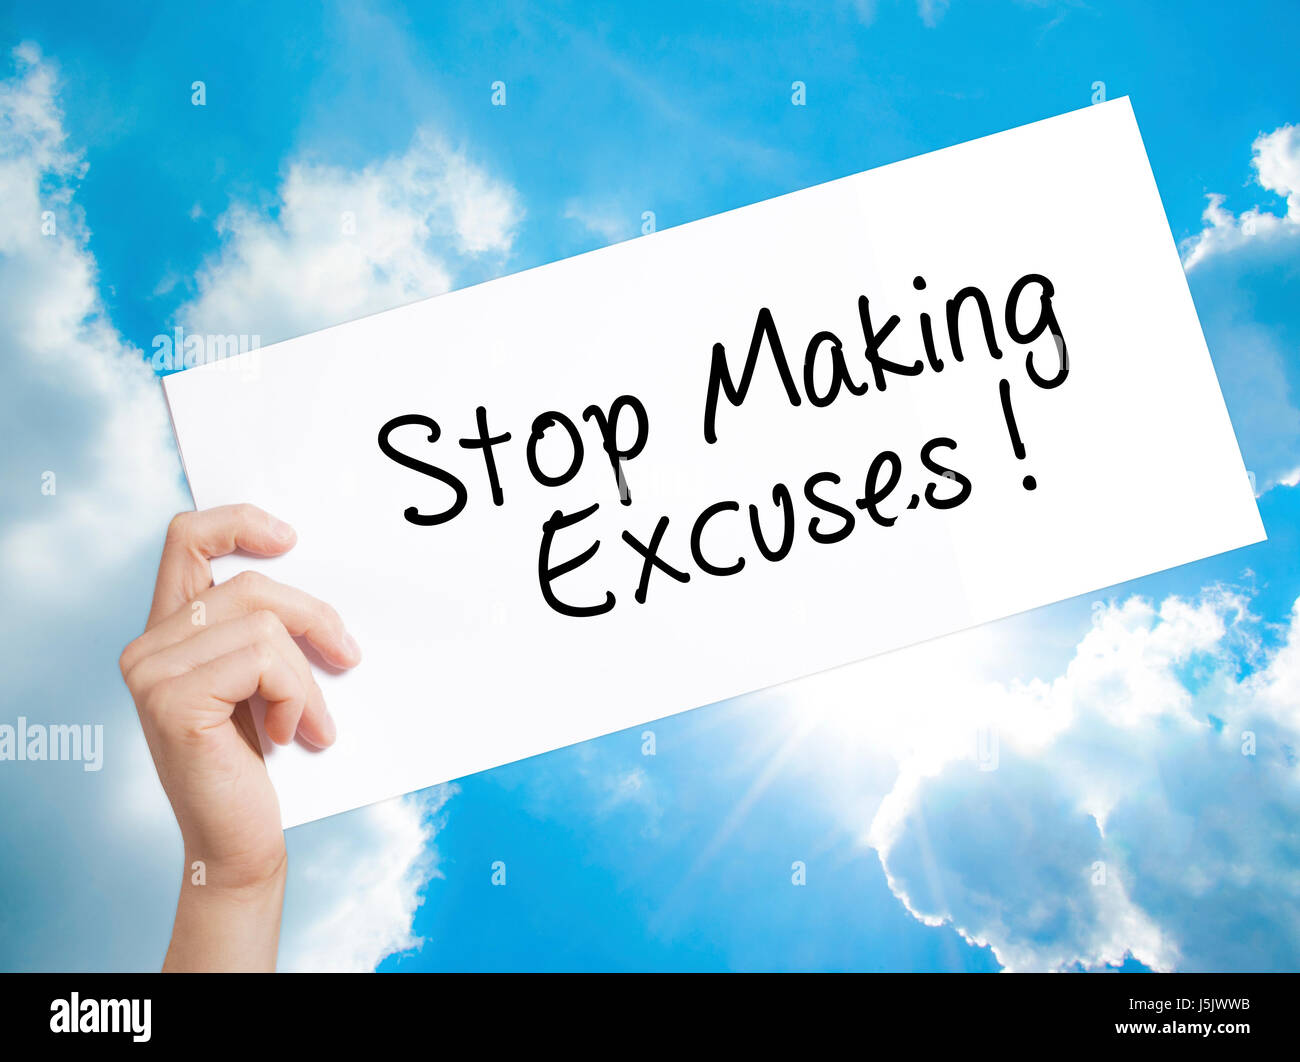 making excuses essay Excuses, excuses, excuses: why people lie, cheat cheat, or make excuses, and is therefore often associated with but not the same as those behaviors.